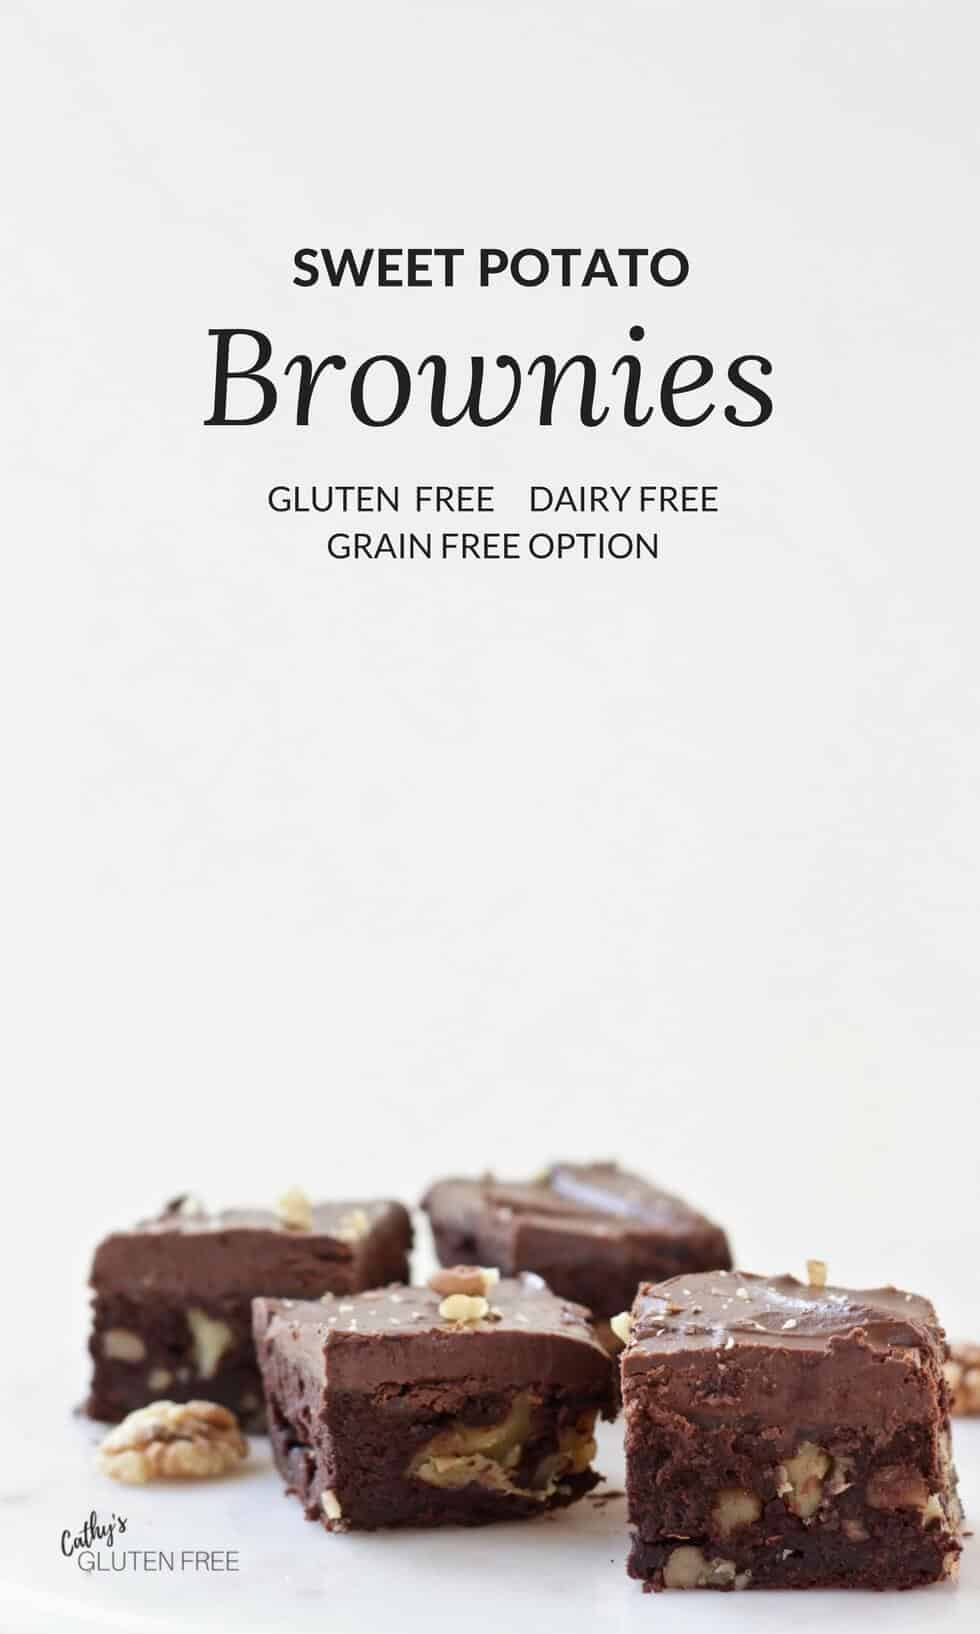 Sweet Potato Gluten Free Brownies | Dairy Free, Grain Free Option